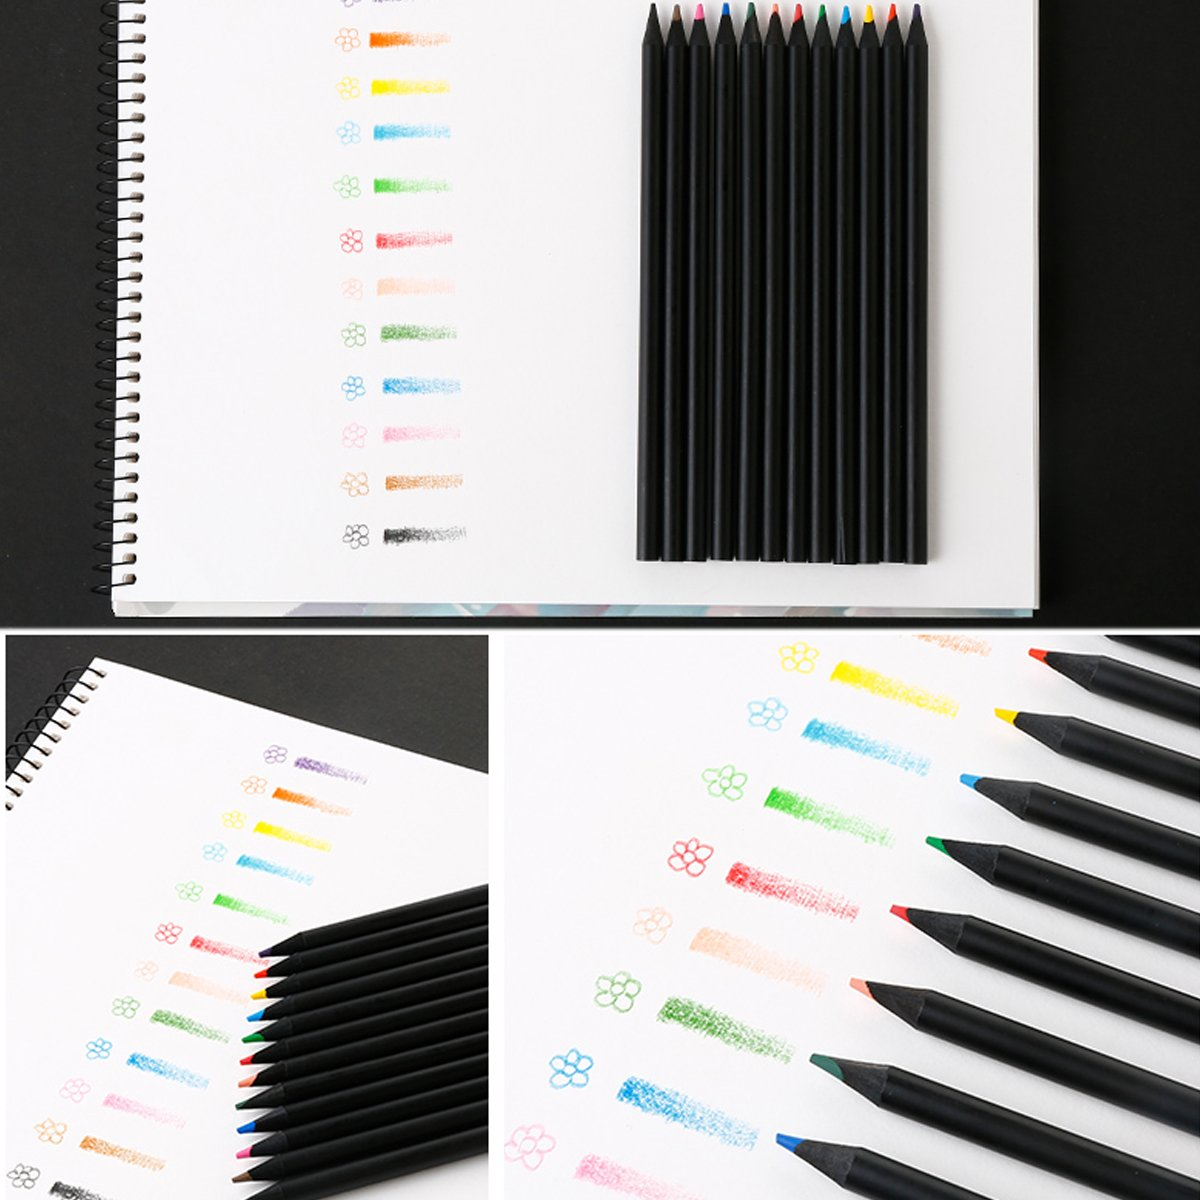 Colored Pencils 12 Colors for Kids Art Drawing - Woodless Coloring Pencil Set - Soft Core(Pack of 24)